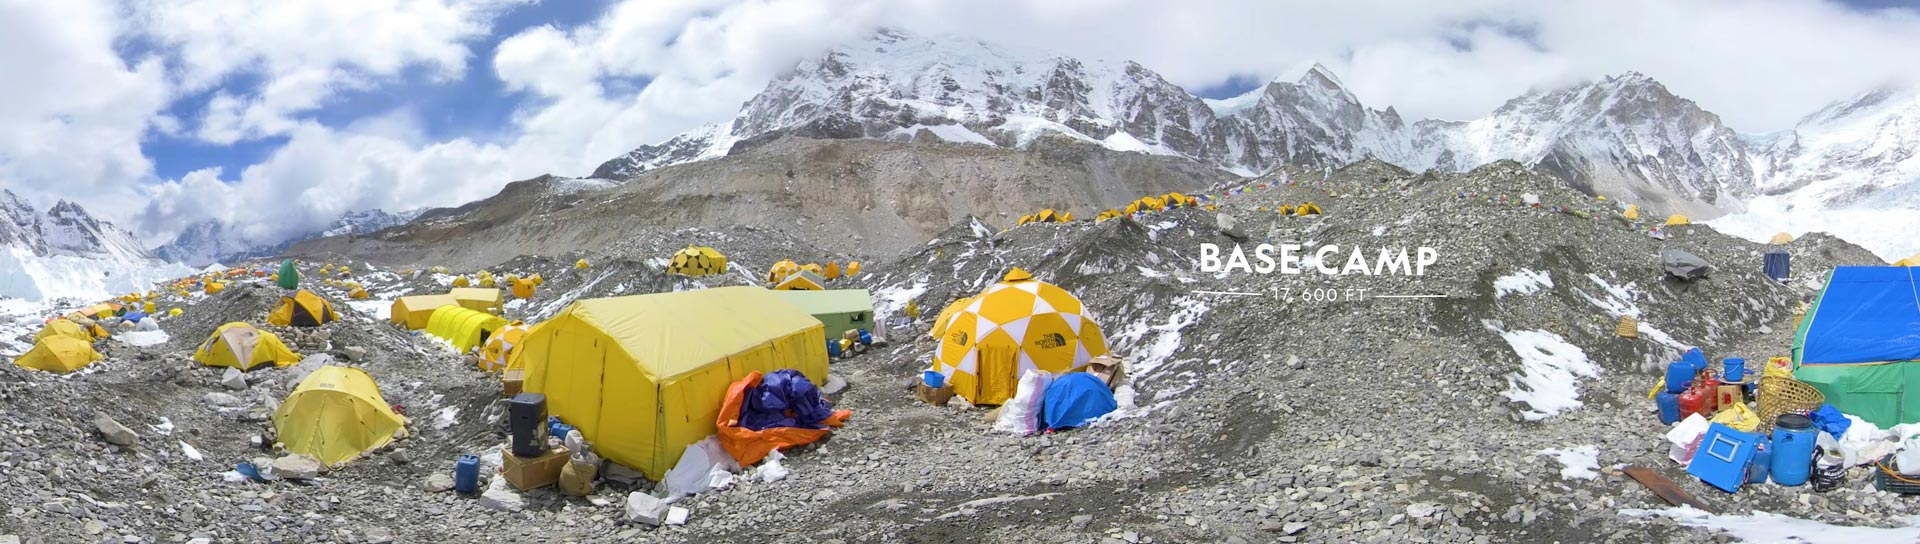 Panoramic view of Base Camp at Mount Everest with tents scattered about.